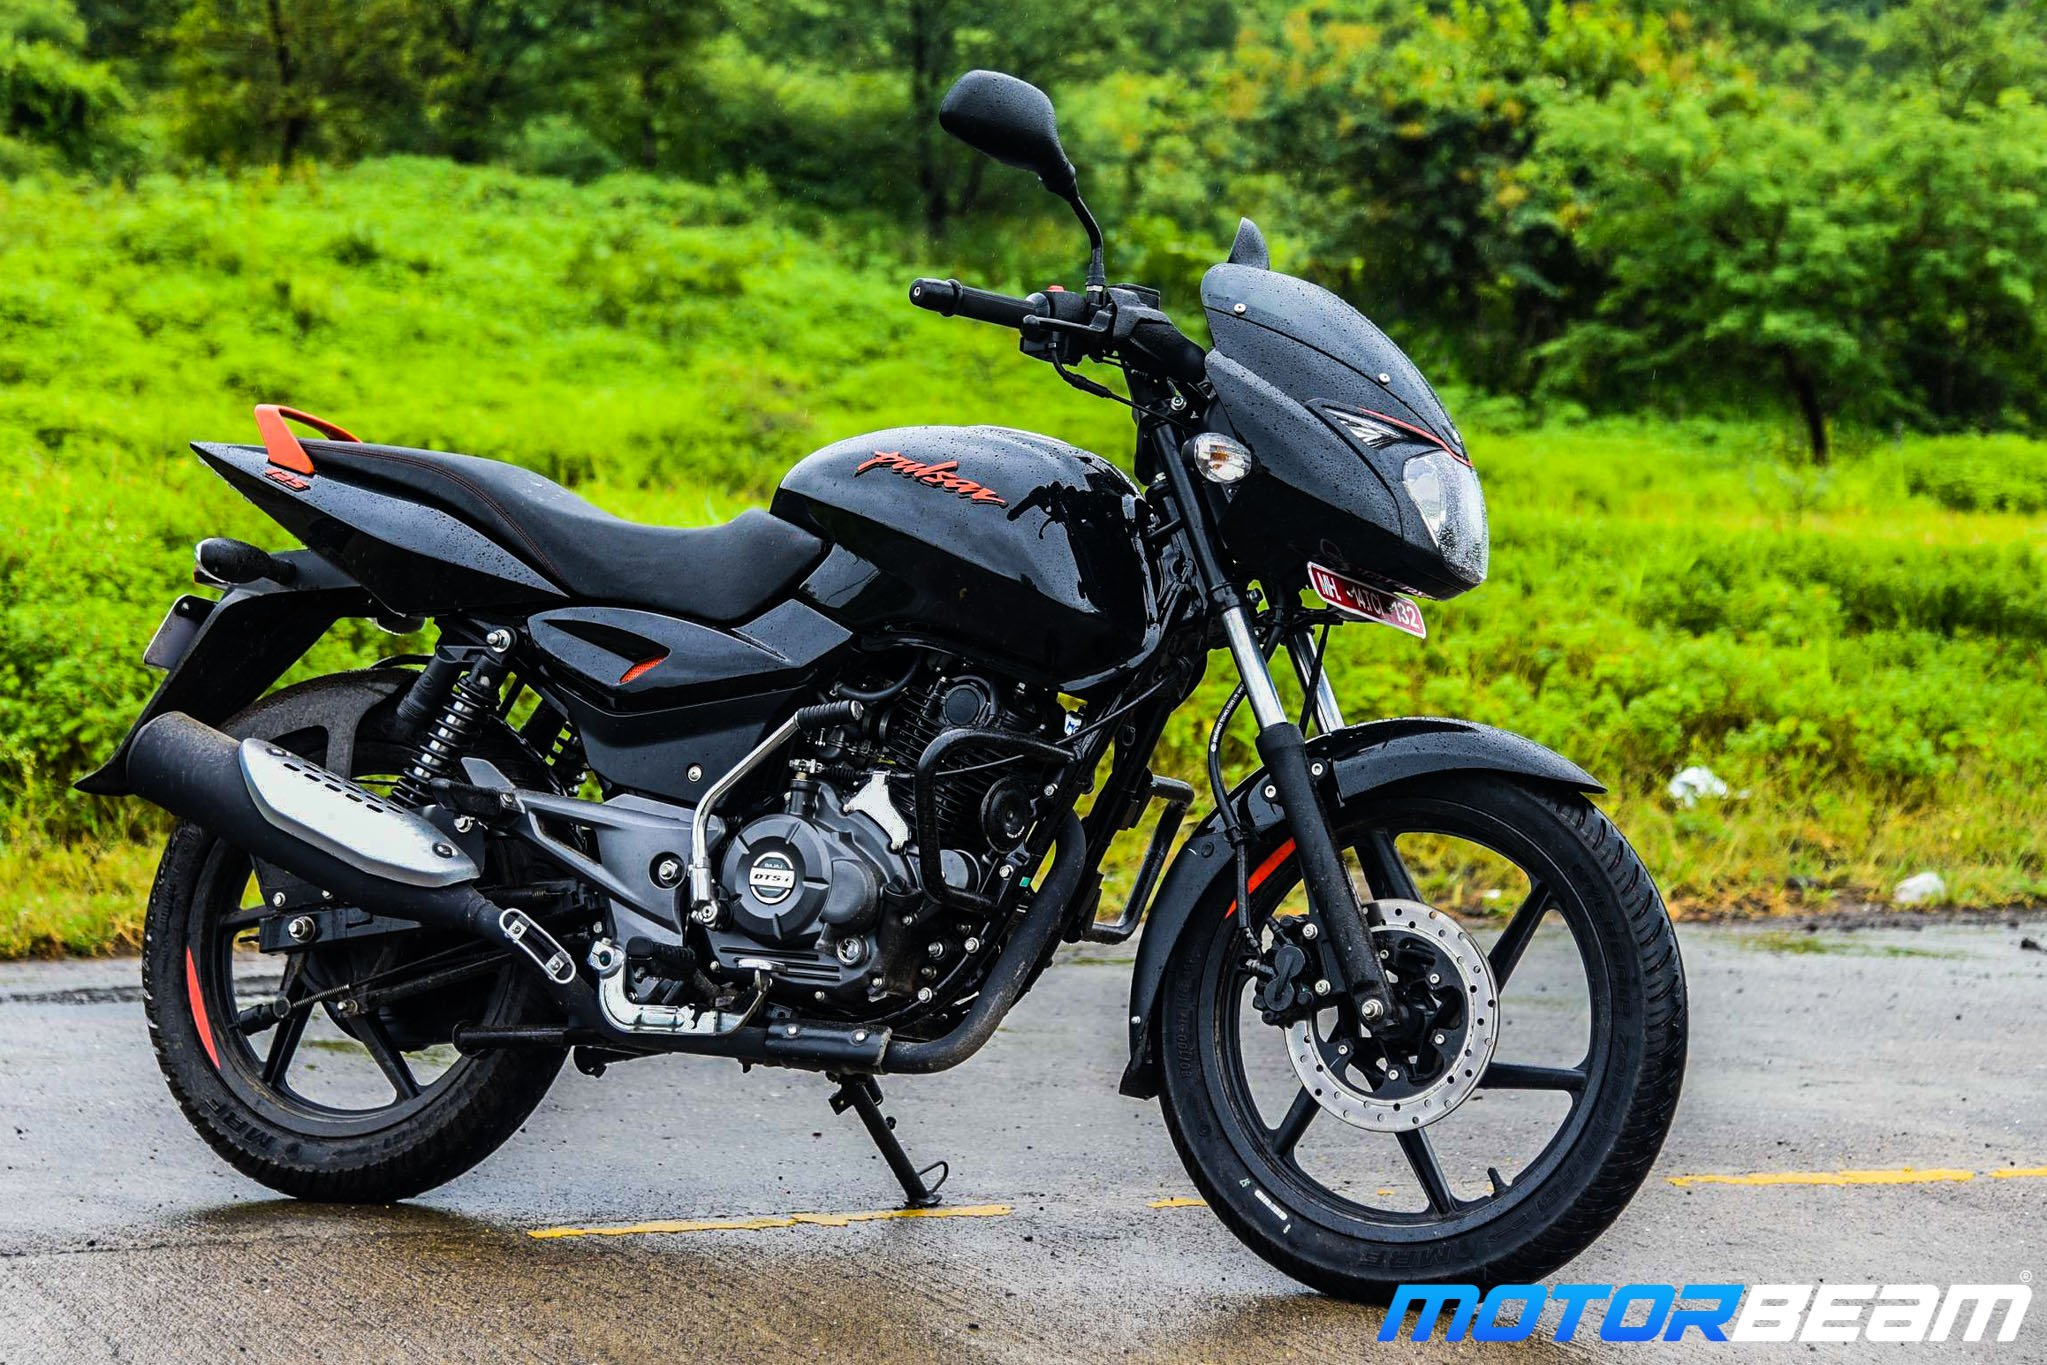 Bajaj Pulsar 125 Neon Road Test Review